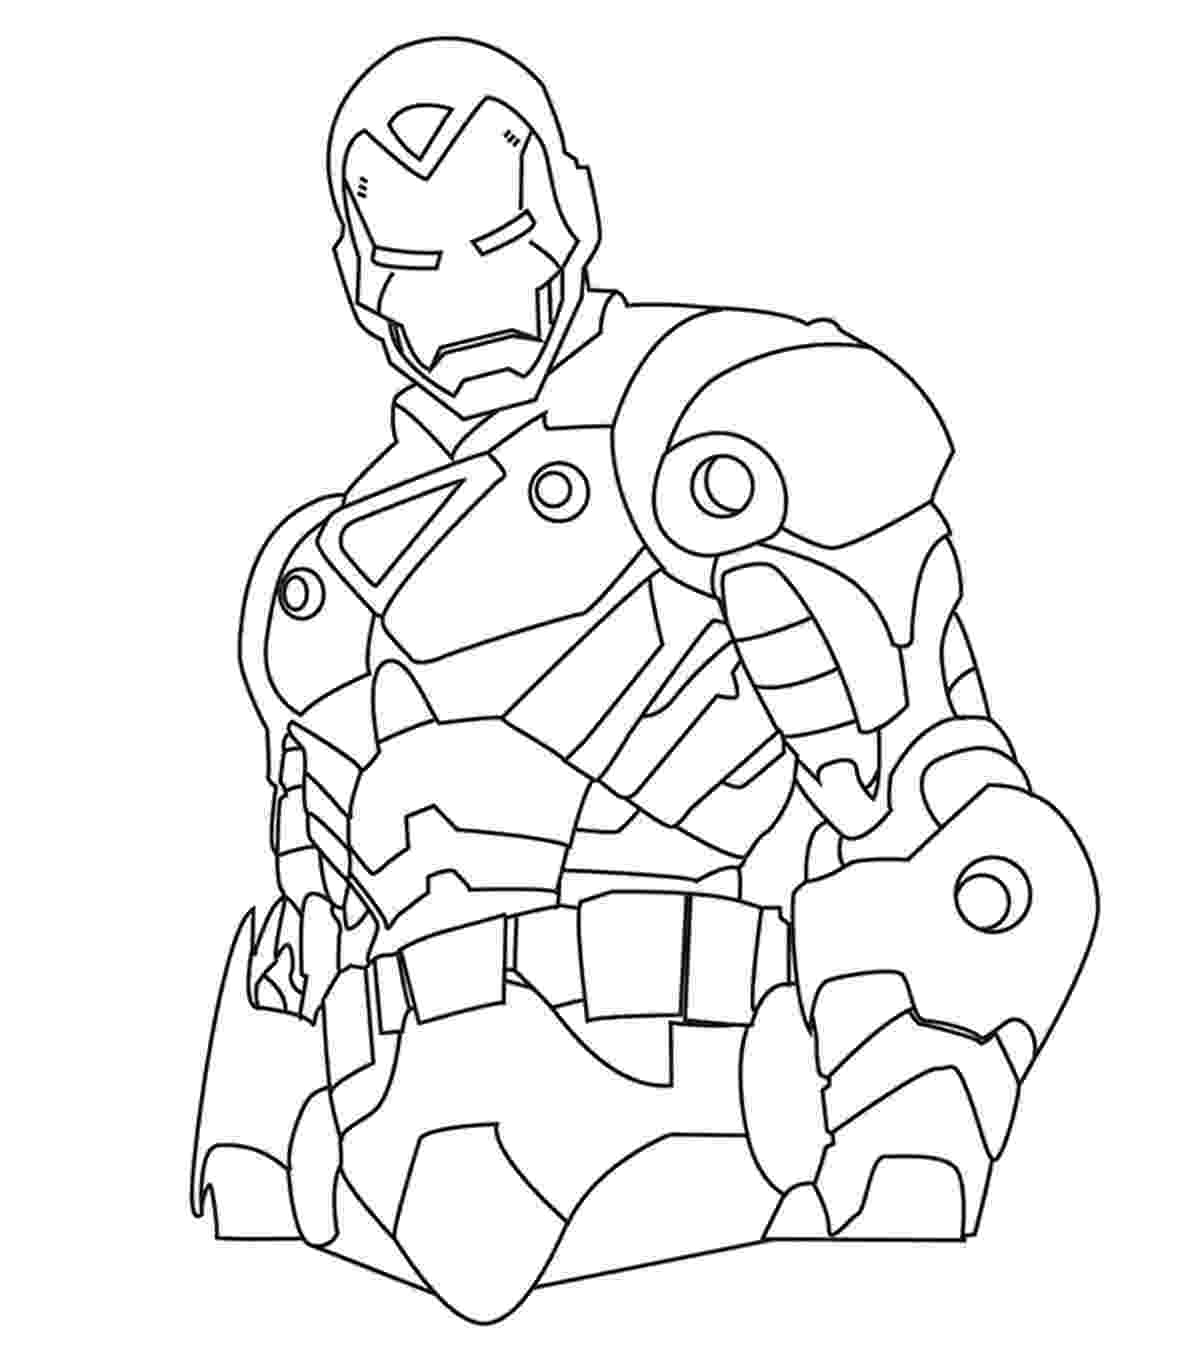 man coloring page business man coloring pages best place to color coloring man page